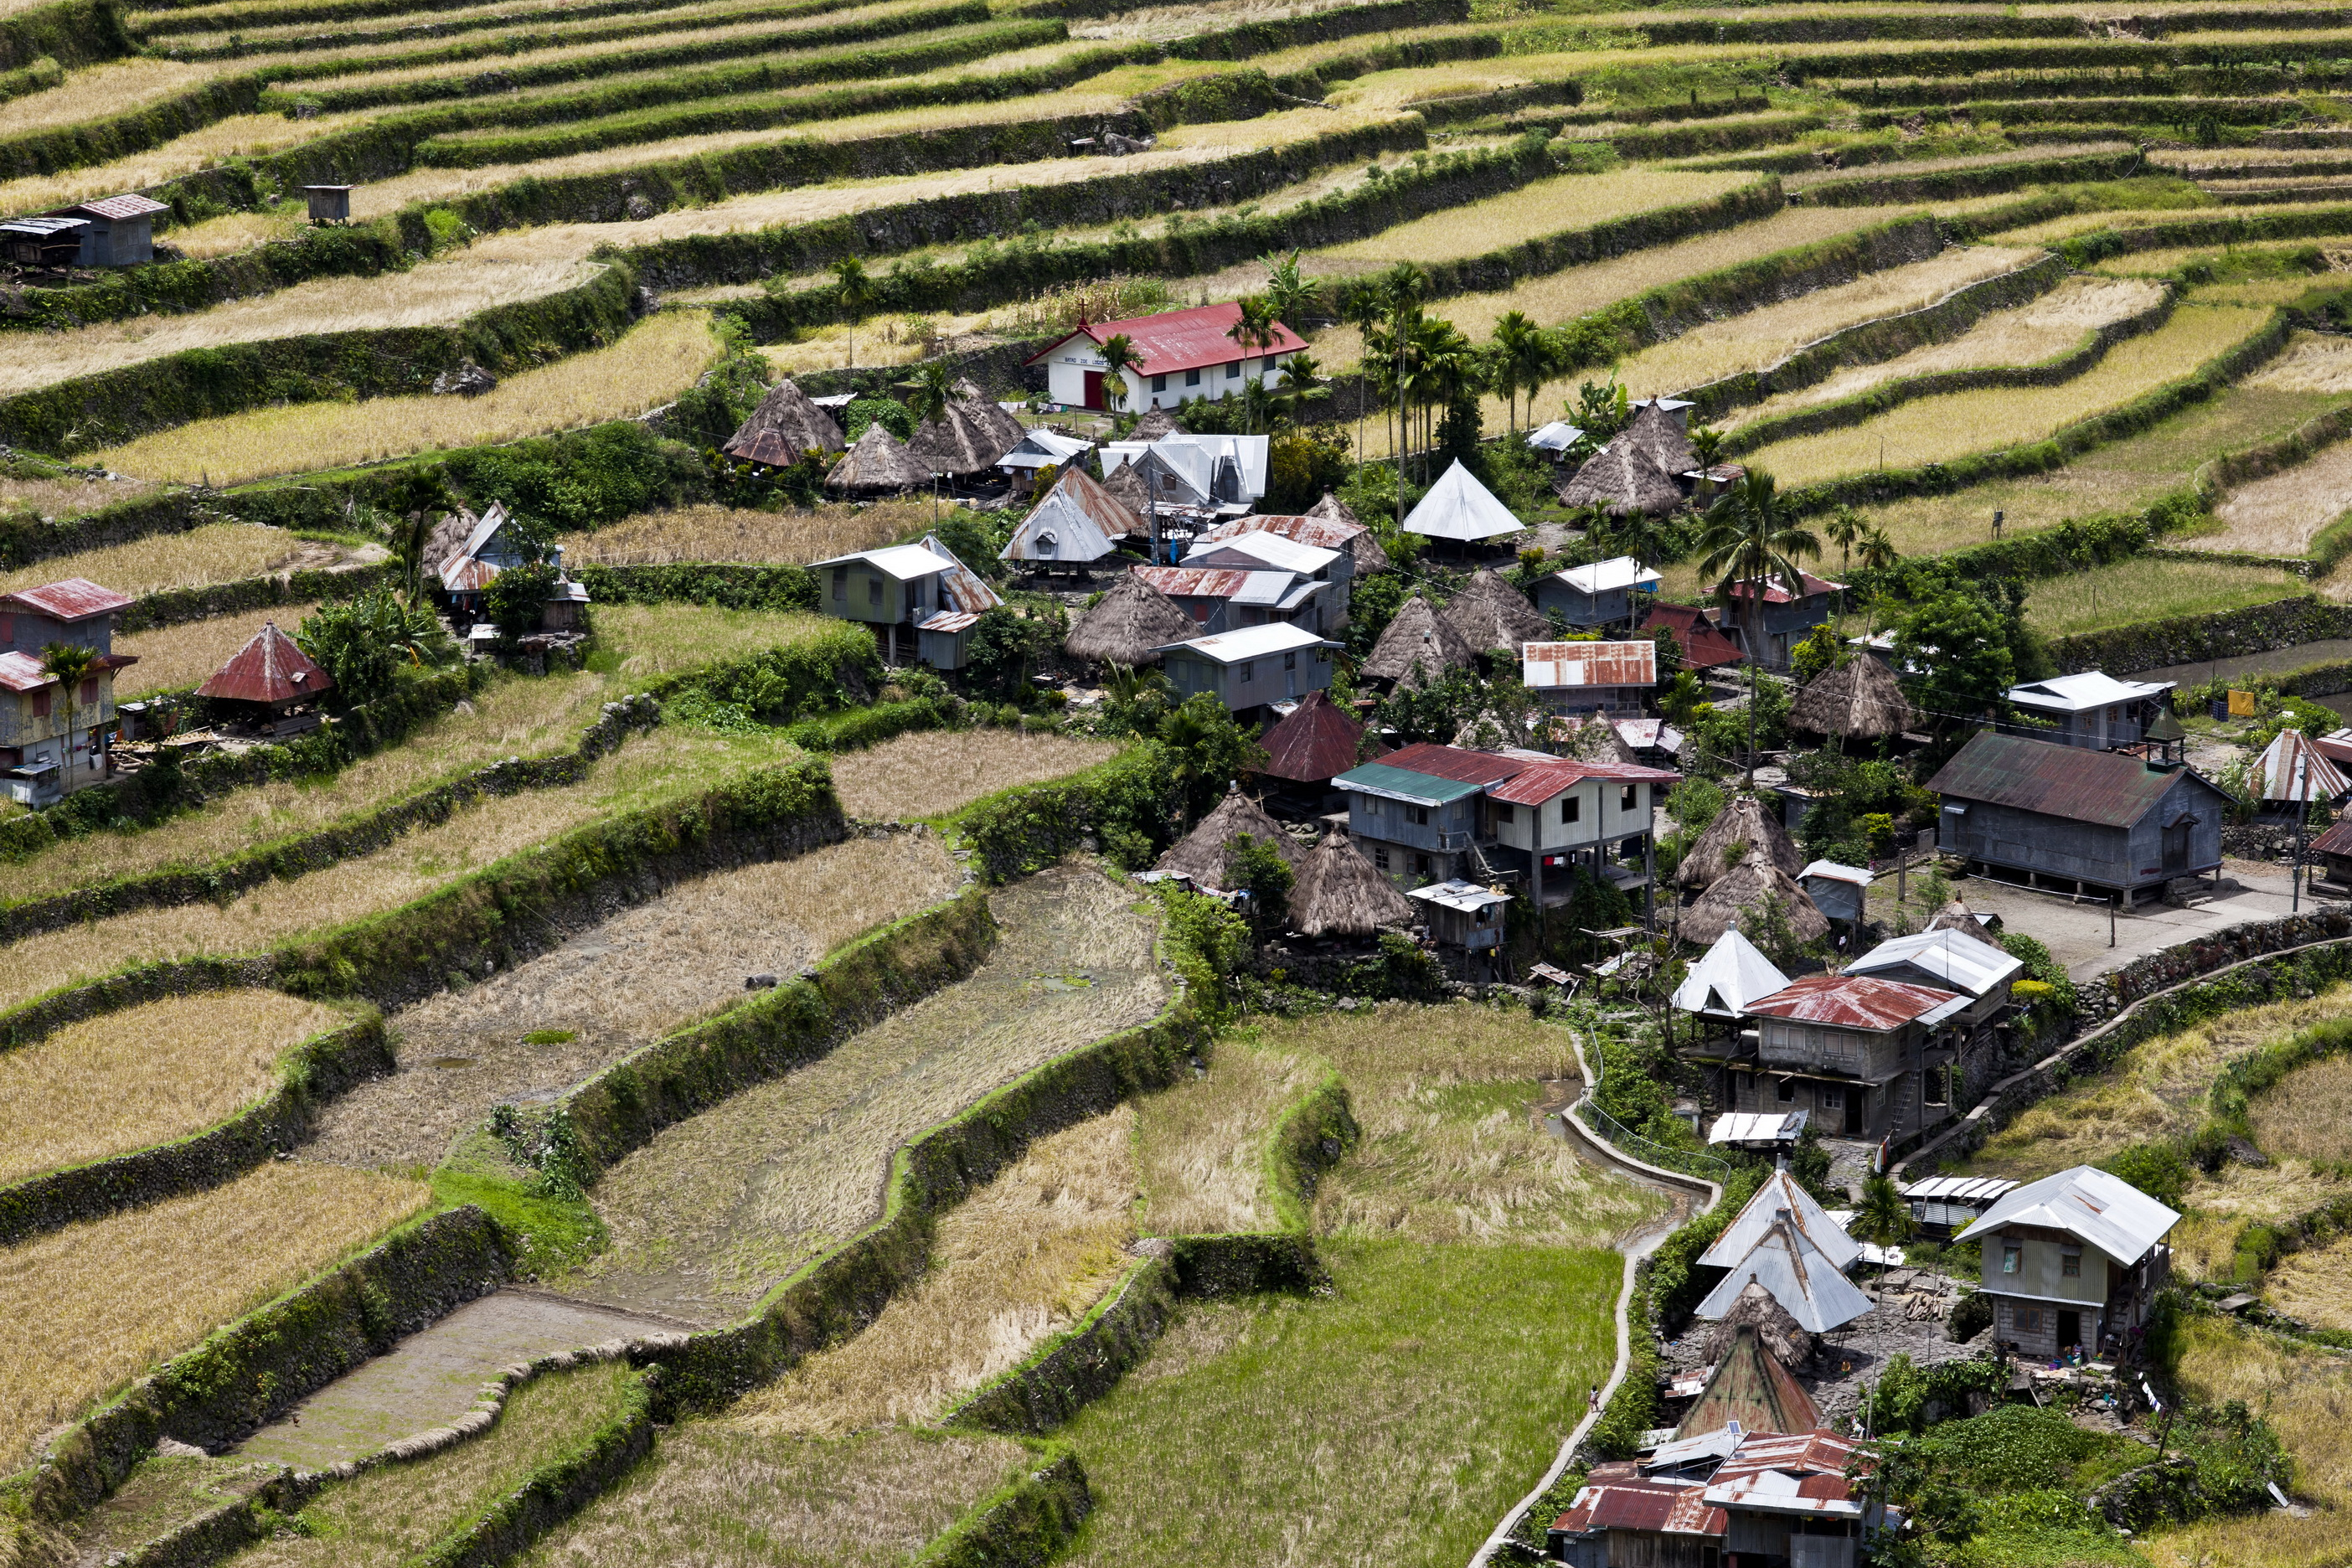 Banaue batad rice terraces ifugao province philippines aug for Terrace design in philippines